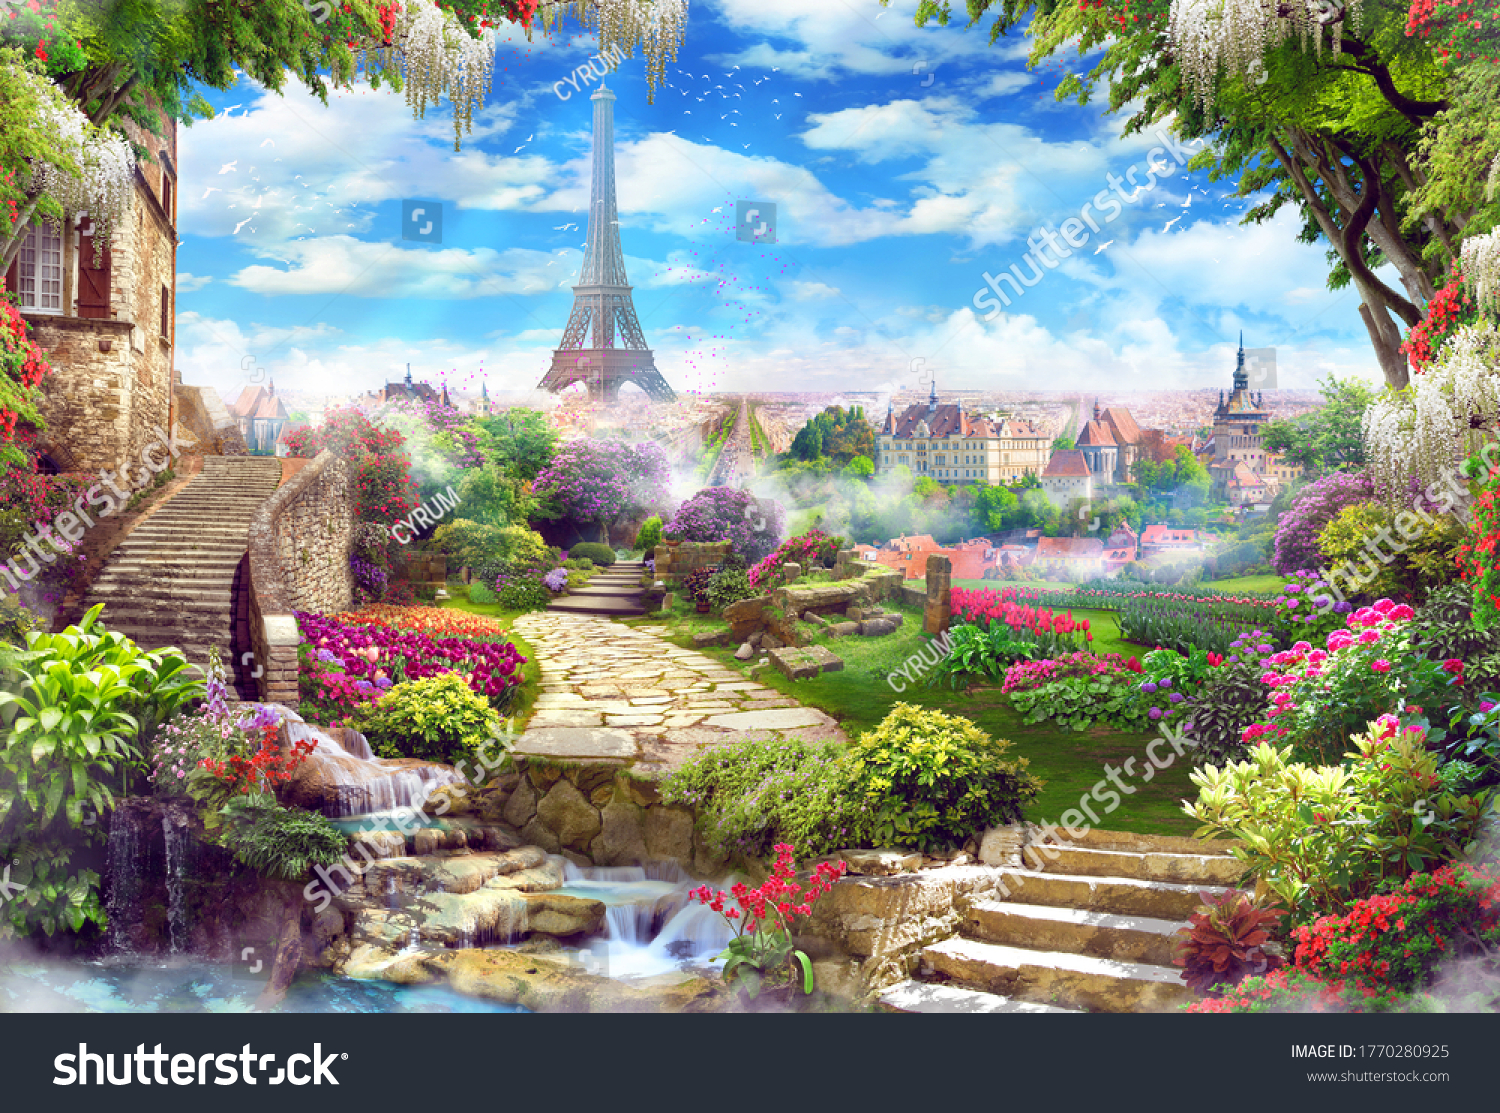 Beautiful view of the Eiffel Tower with access to the garden, with old houses, flowers and waterfalls. Digital collage, mural and mural. Wallpaper. Poster design. Modular panel.  #1770280925